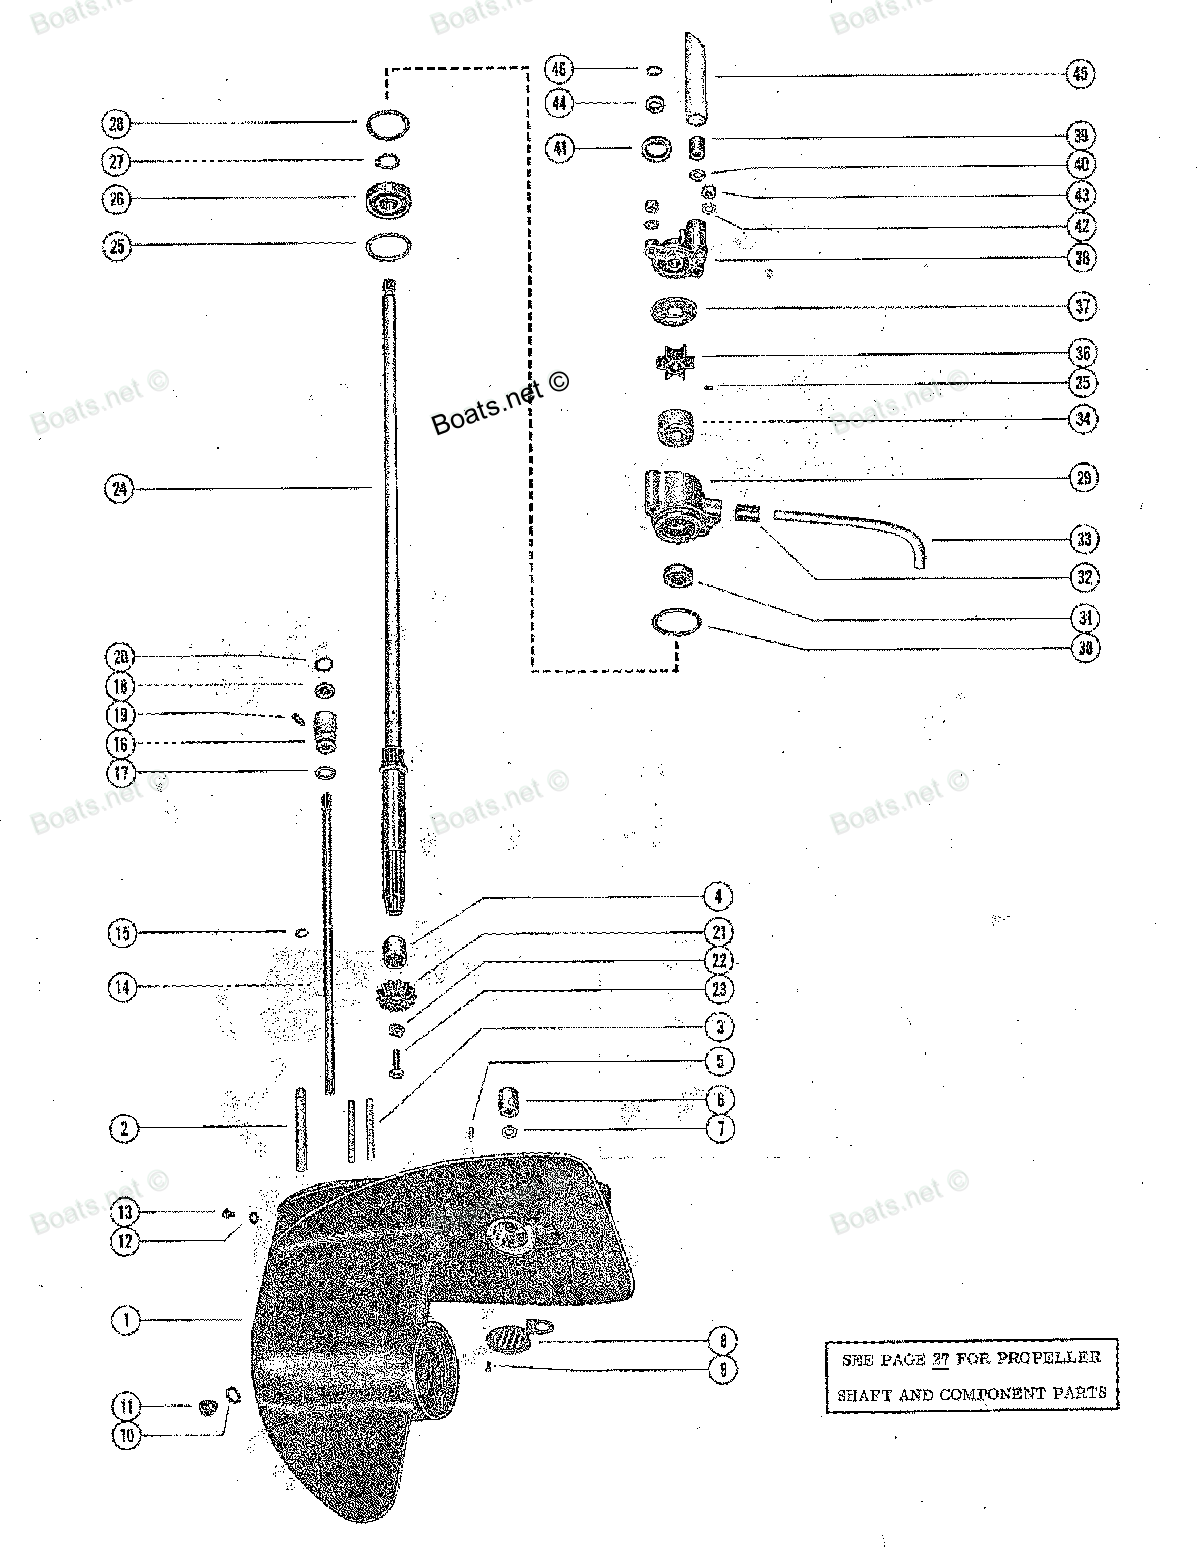 mercury 9.8 outboard repair manual